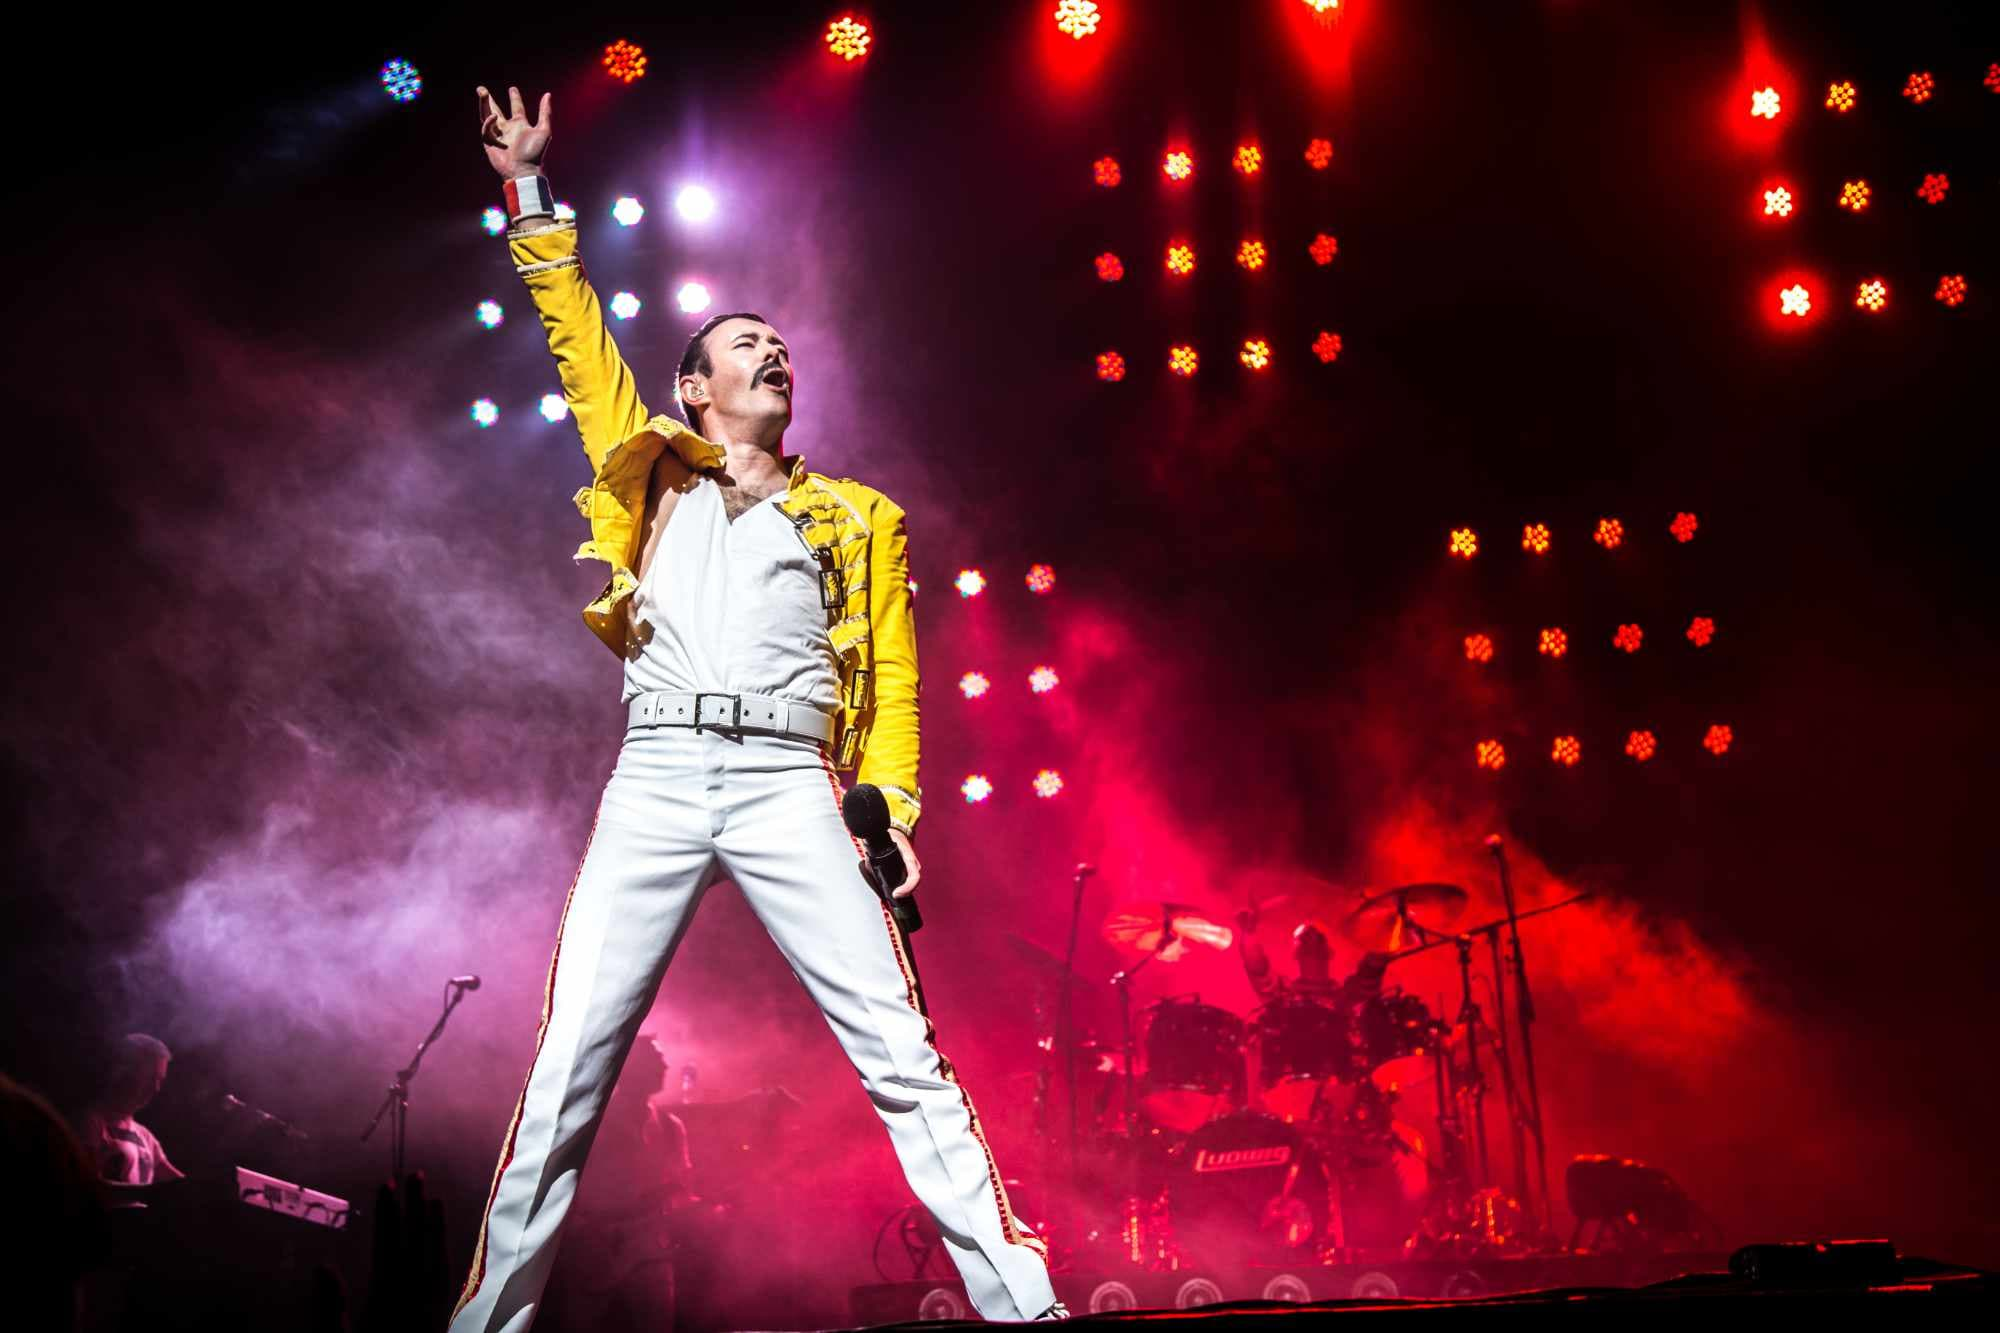 A photo of the frontman of One Night of Queen (dressed as Freddie Mercury) posing on-stage with his fist in the air.